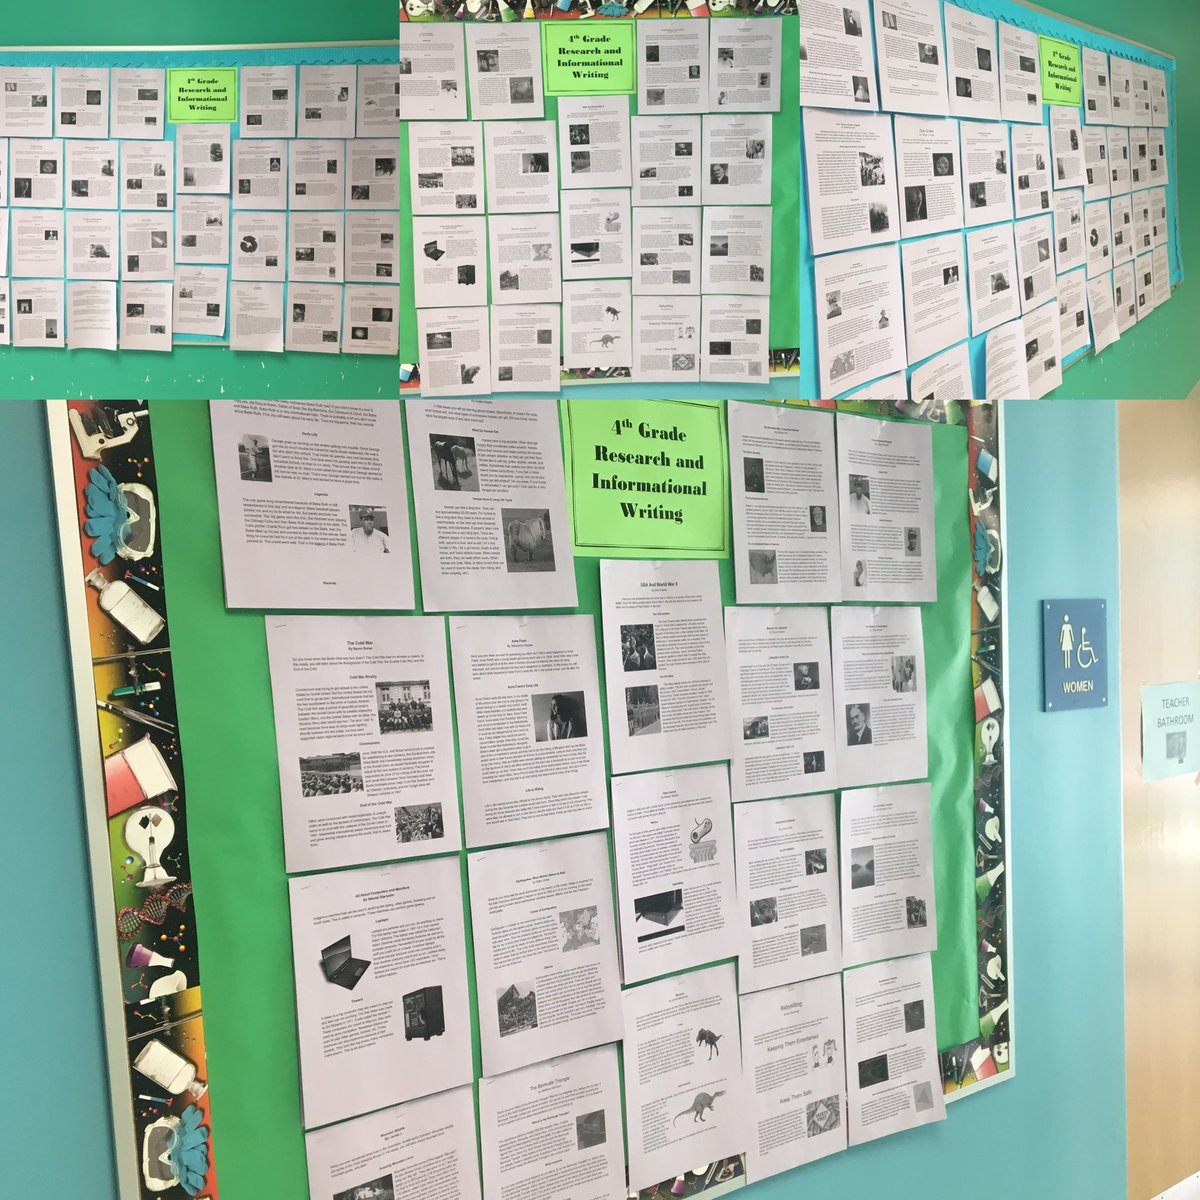 Want to know more about The Loch Ness, Babe Ruth, Earthquakes, The Bermuda Triangle? Check out 4th Grade Research and Informational writing pieces outside Ms Sevier's classroom📝📝<a target='_blank' href='http://twitter.com/GlebeAPS'>@GlebeAPS</a> # GlebeEagles<a target='_blank' href='http://twitter.com/glebe4thgrade'>@glebe4thgrade</a> <a target='_blank' href='https://t.co/chMLJMhGlF'>https://t.co/chMLJMhGlF</a>